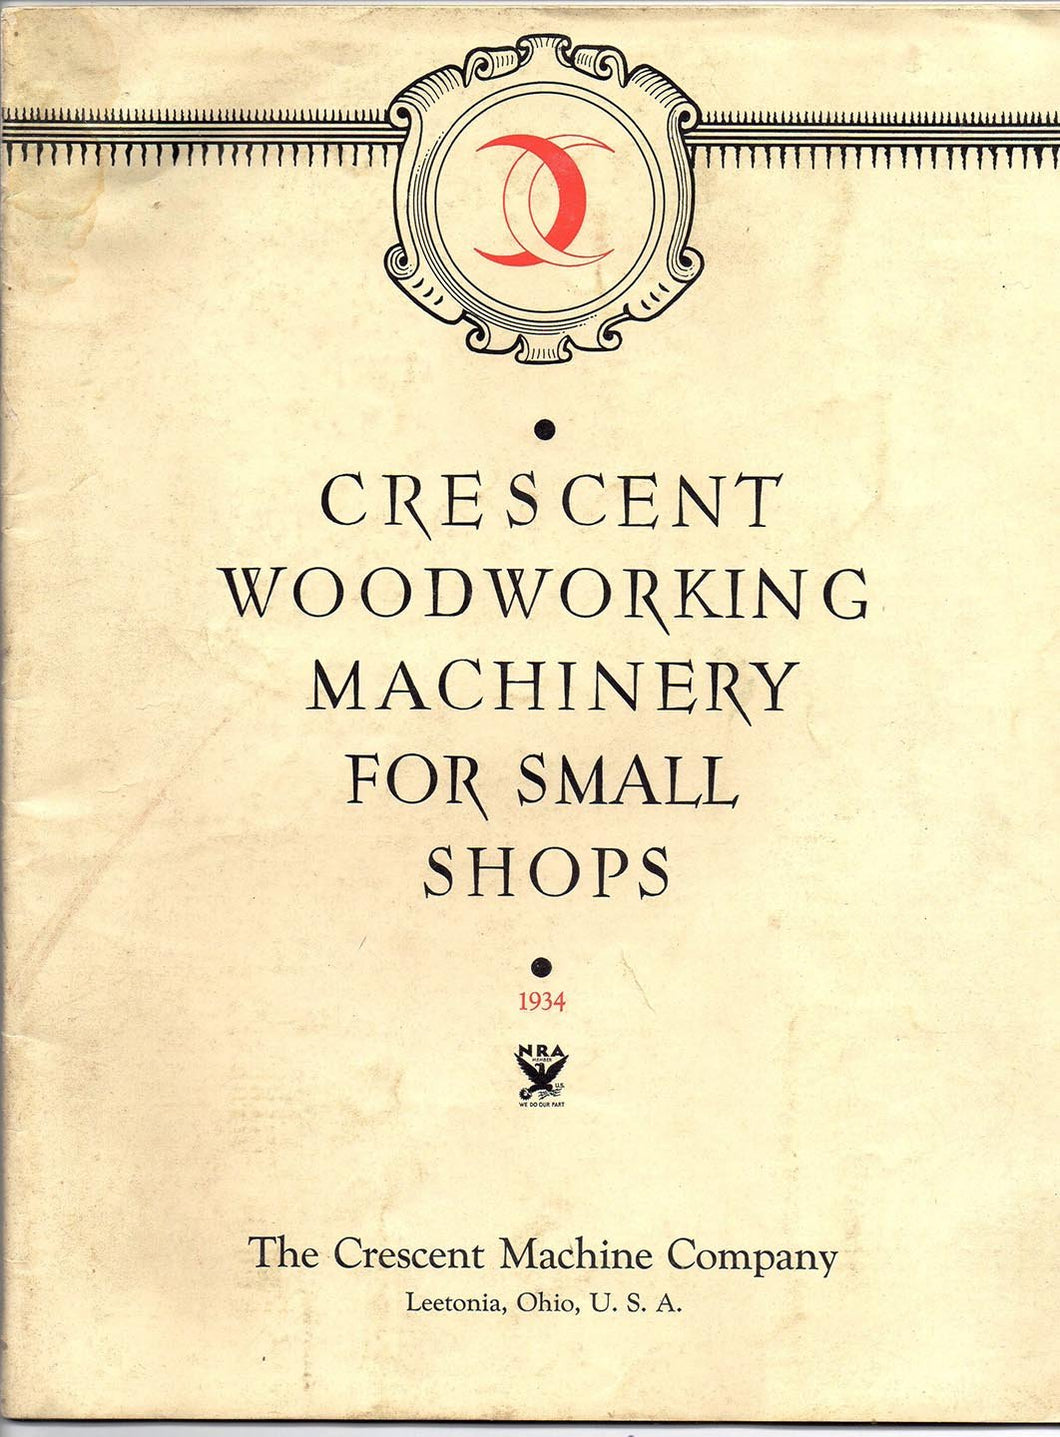 Crescent Woodworking Machinery For Small Shops